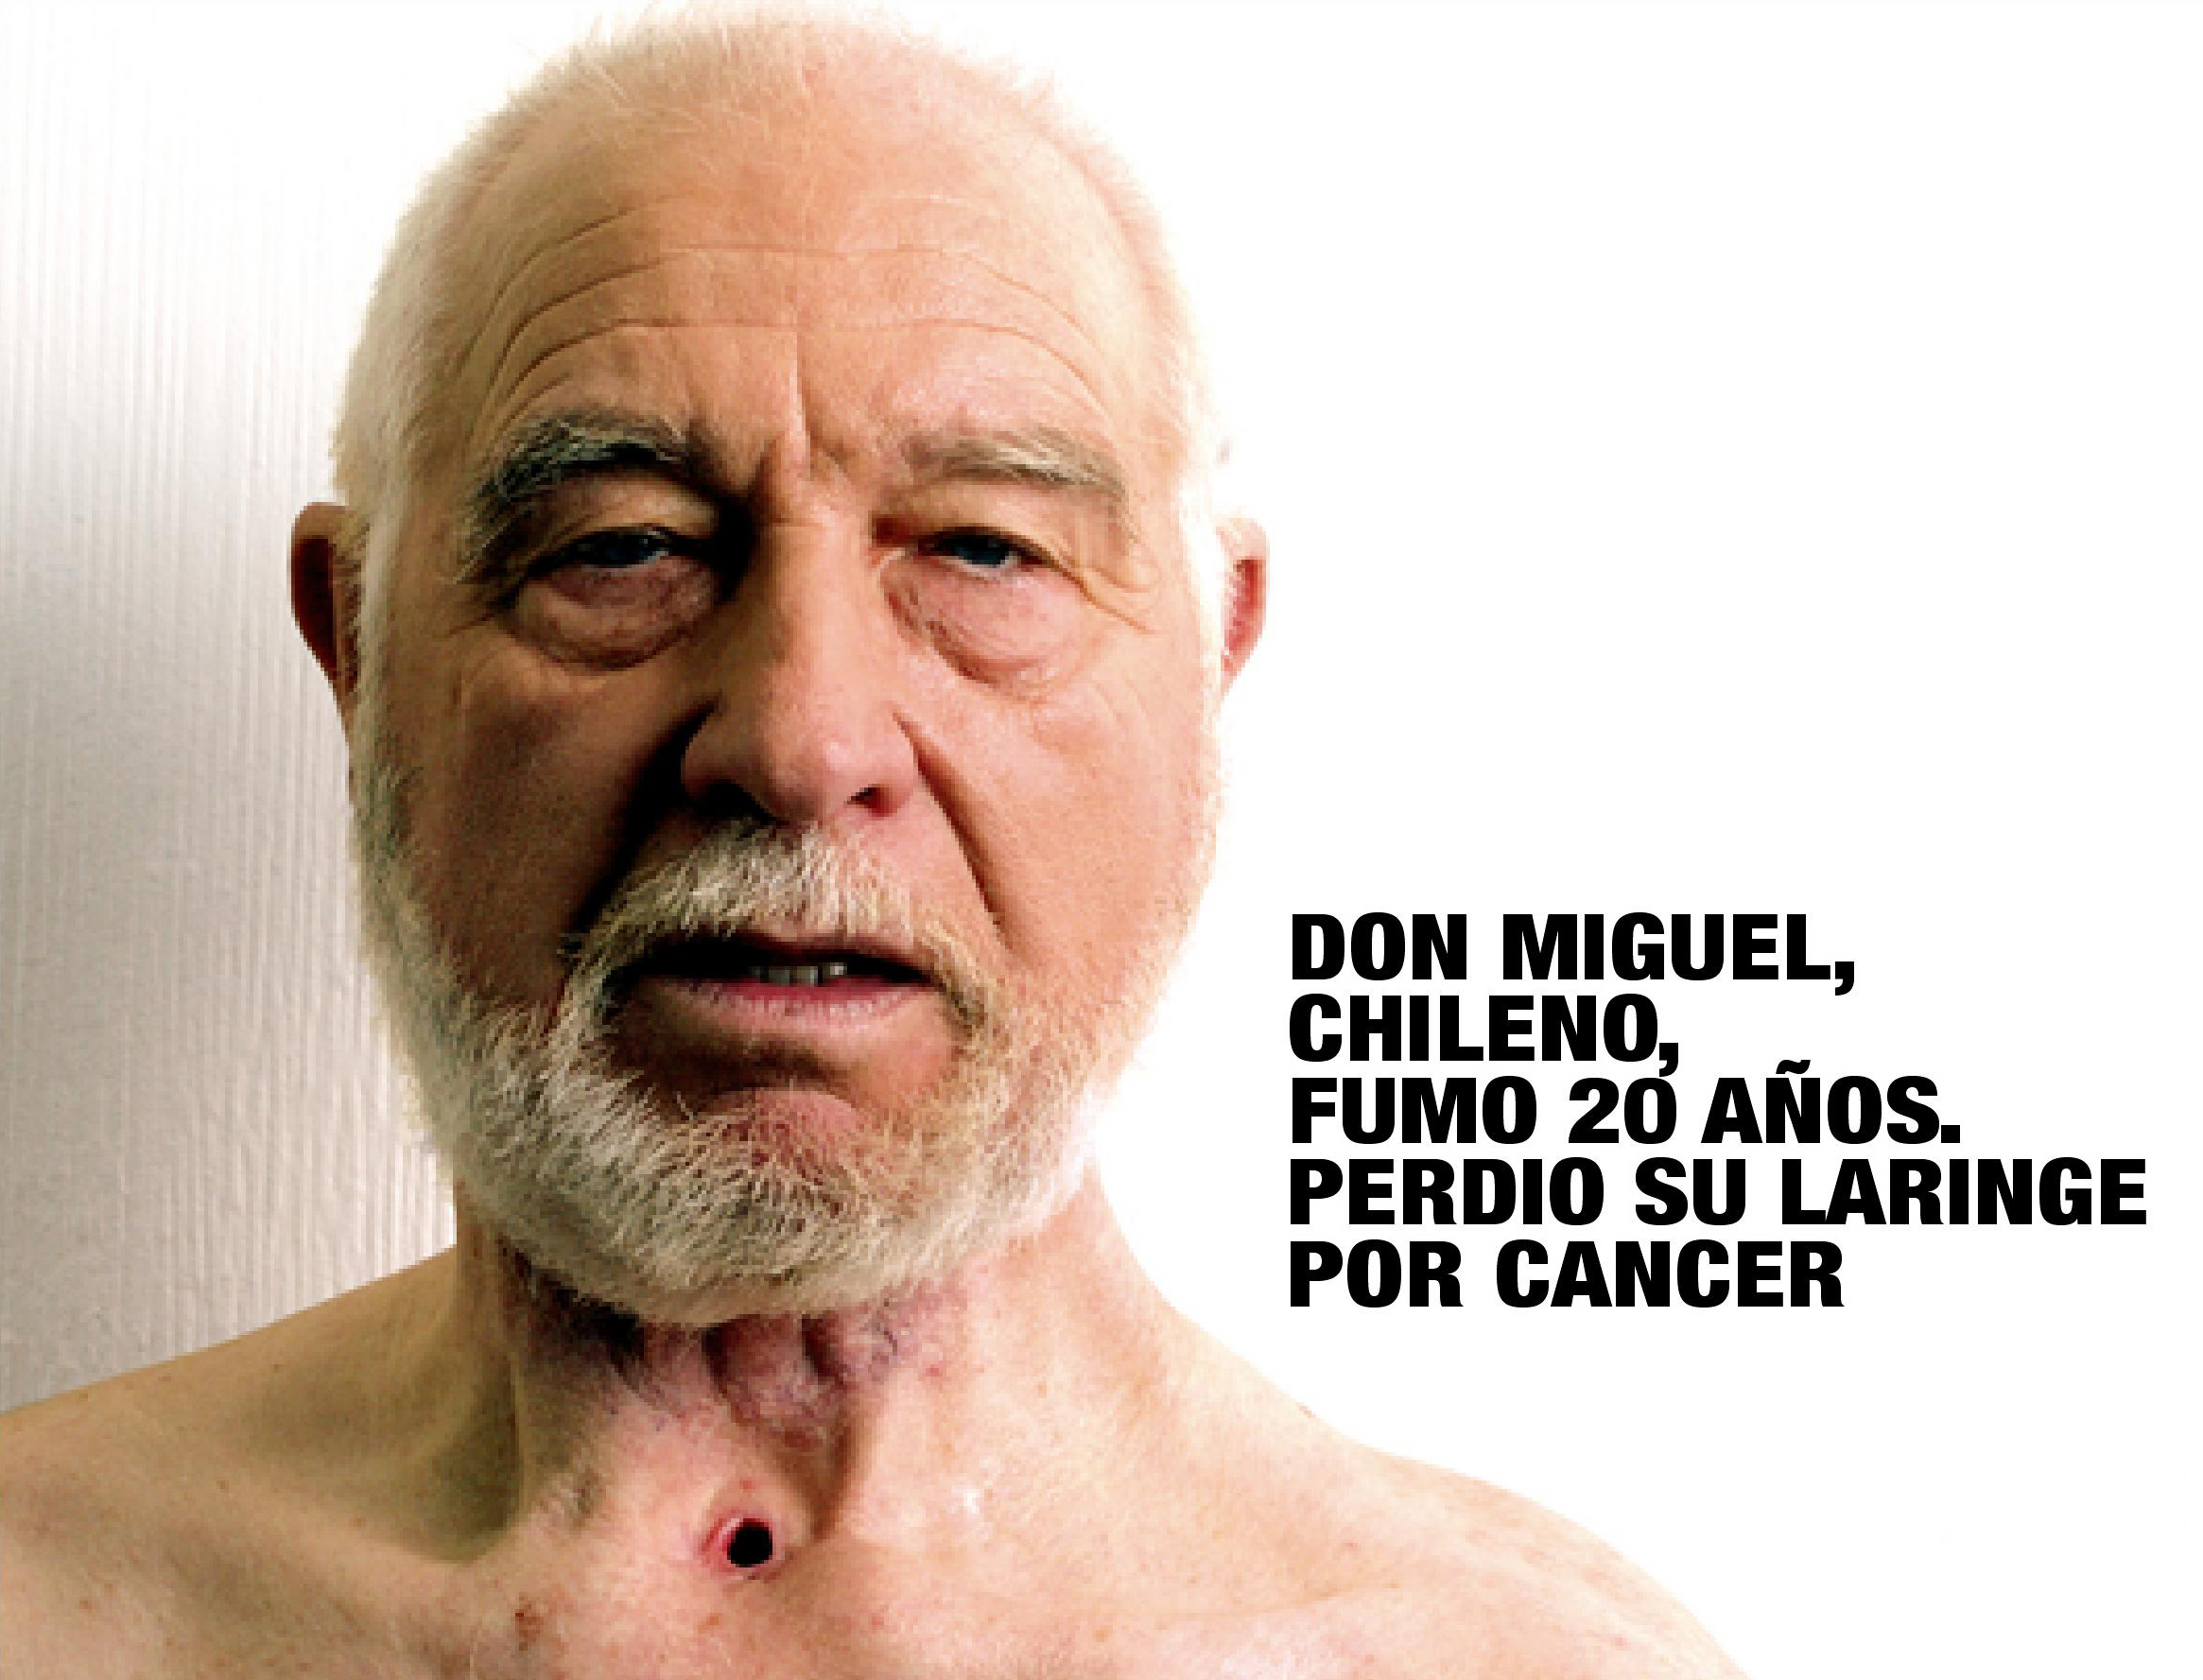 Chile 2006 Health Effects other - lived experience, cancer of larynx